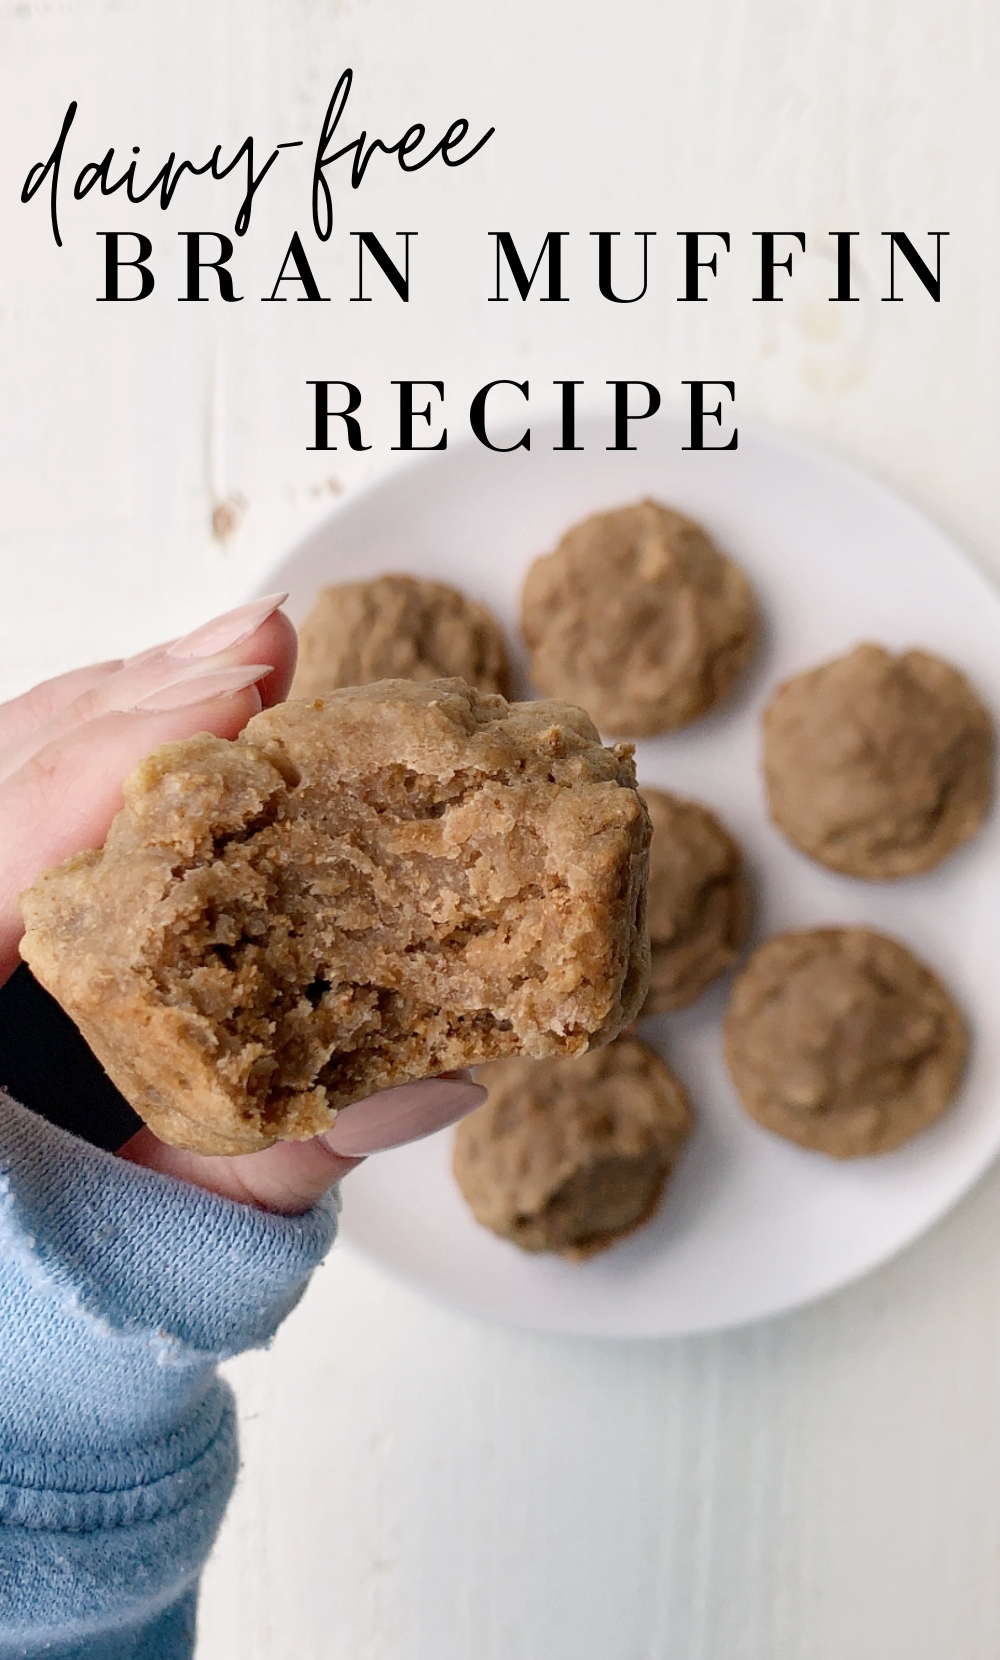 dairy-free bran muffin recipe